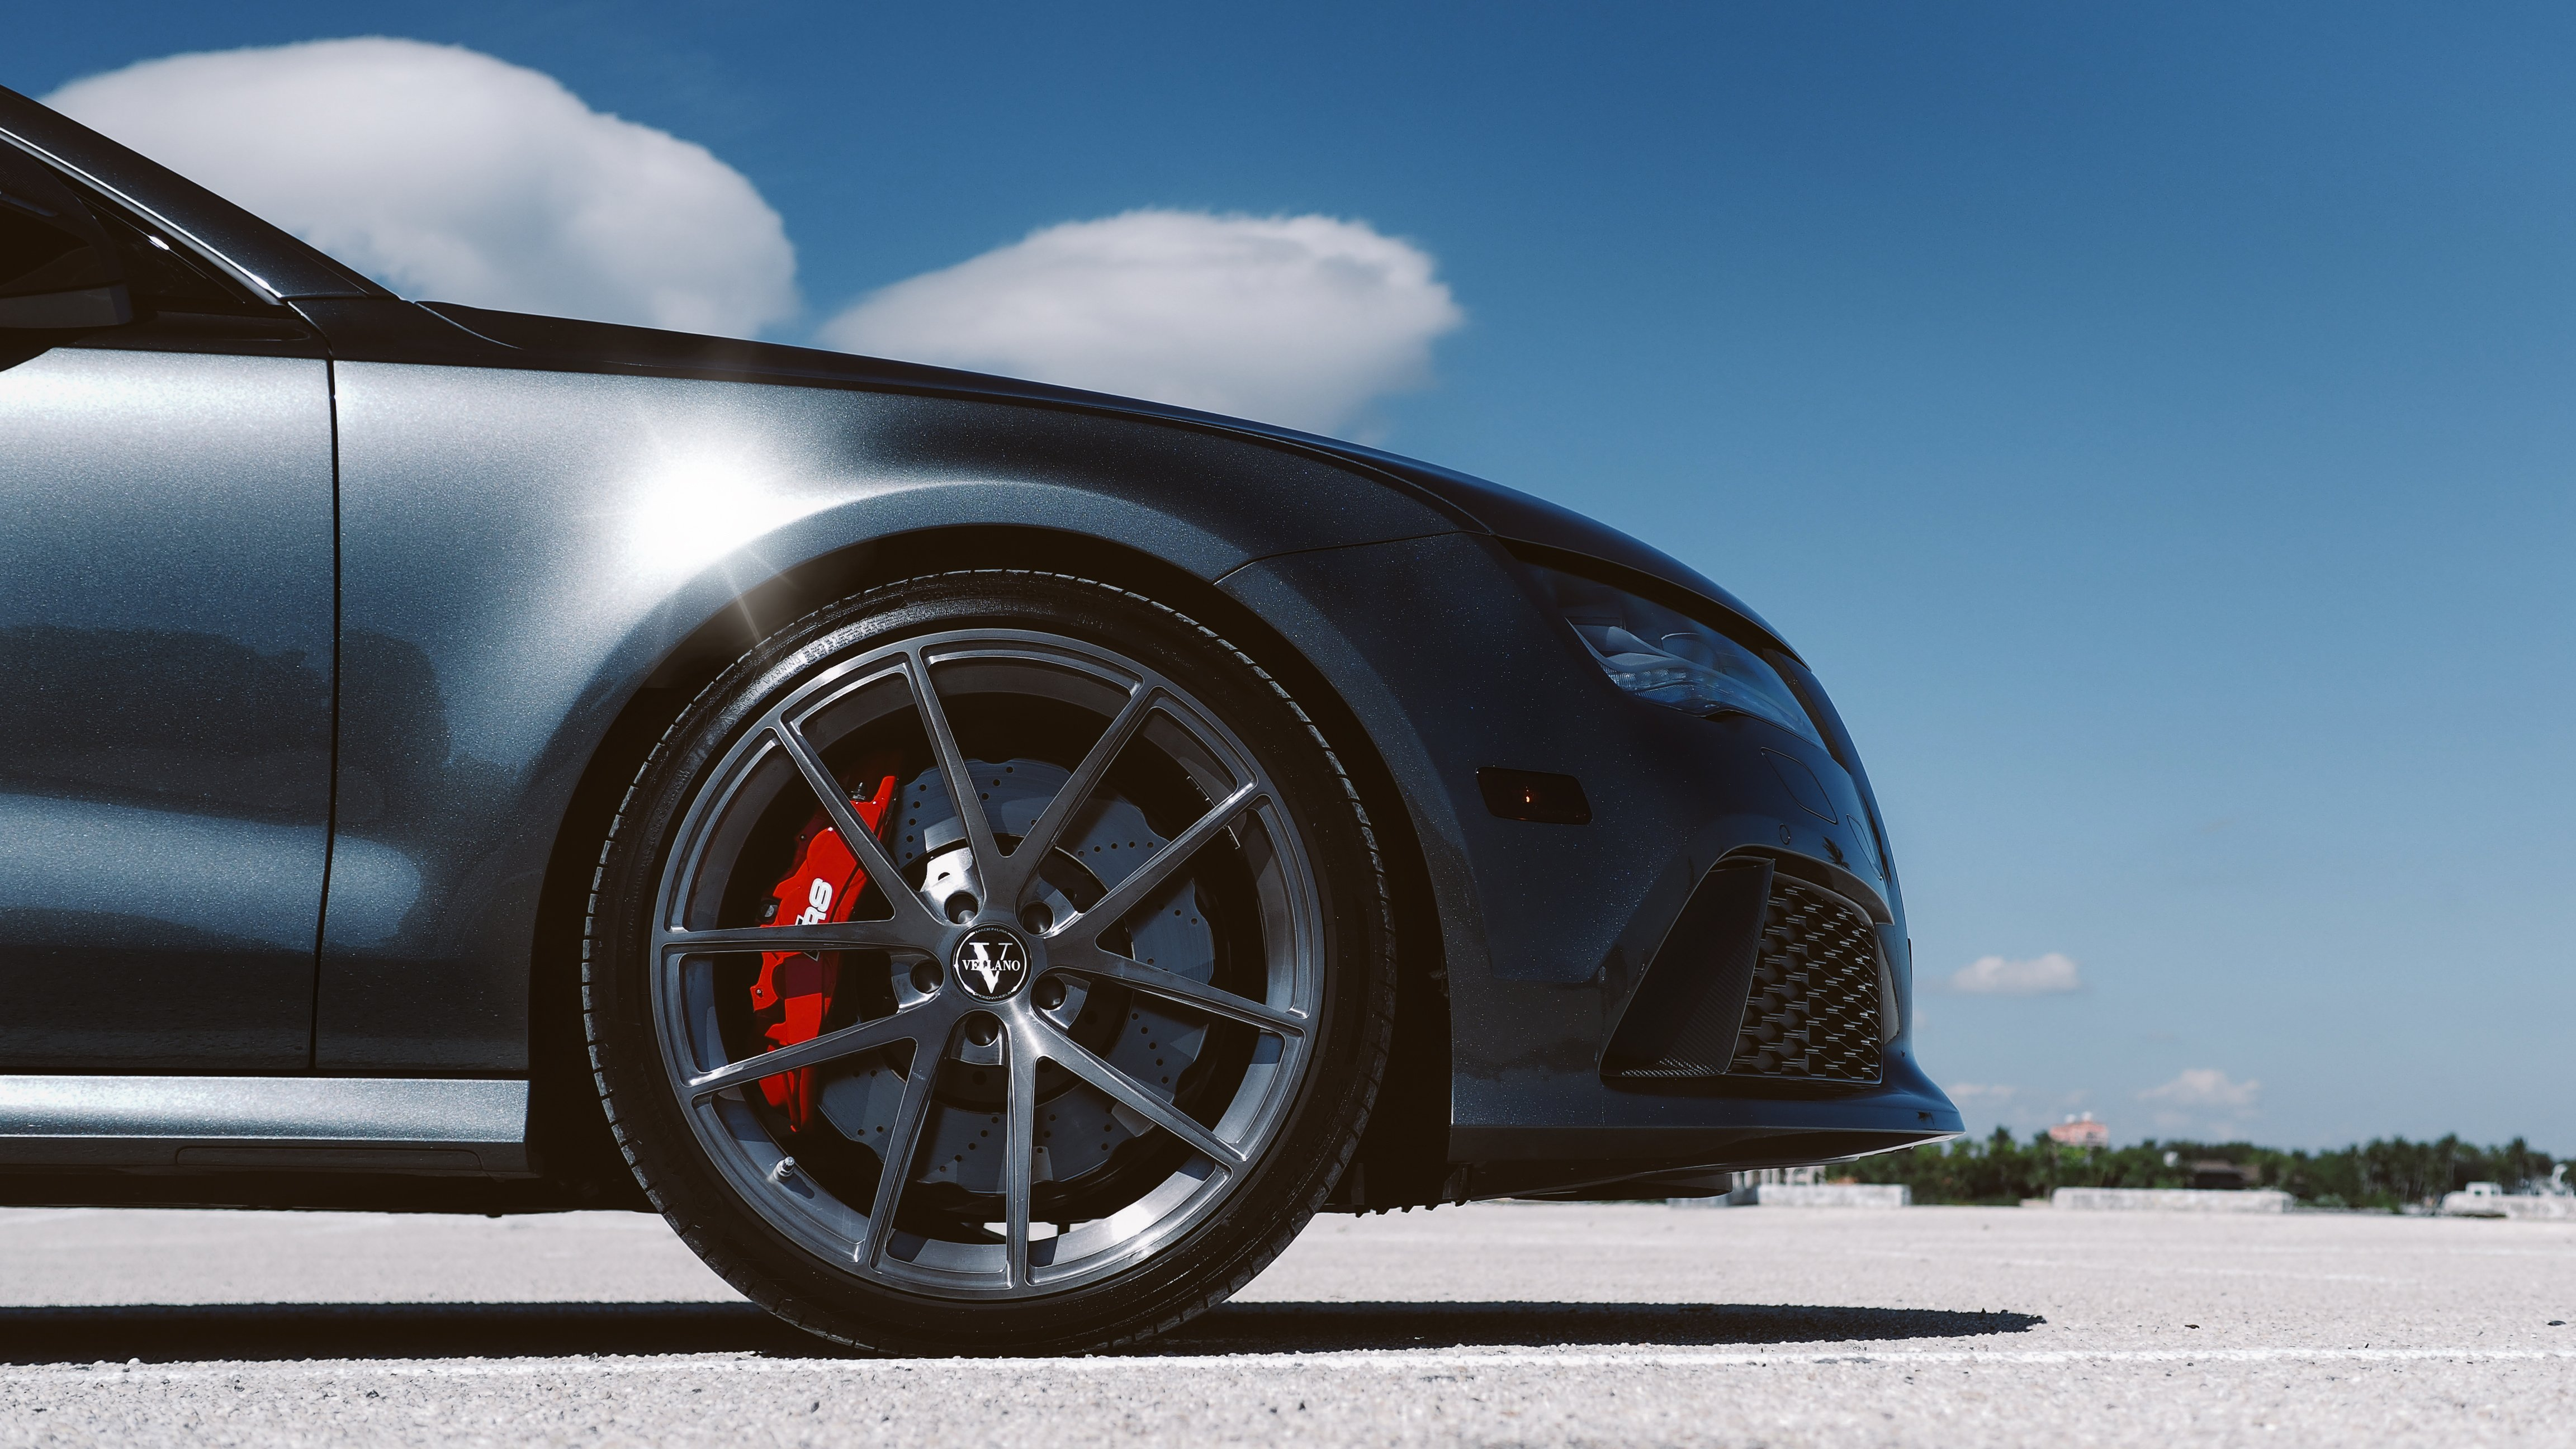 Vellano Audi Rs7 Wallpaper 4608x2592 370999 Wallpaperup